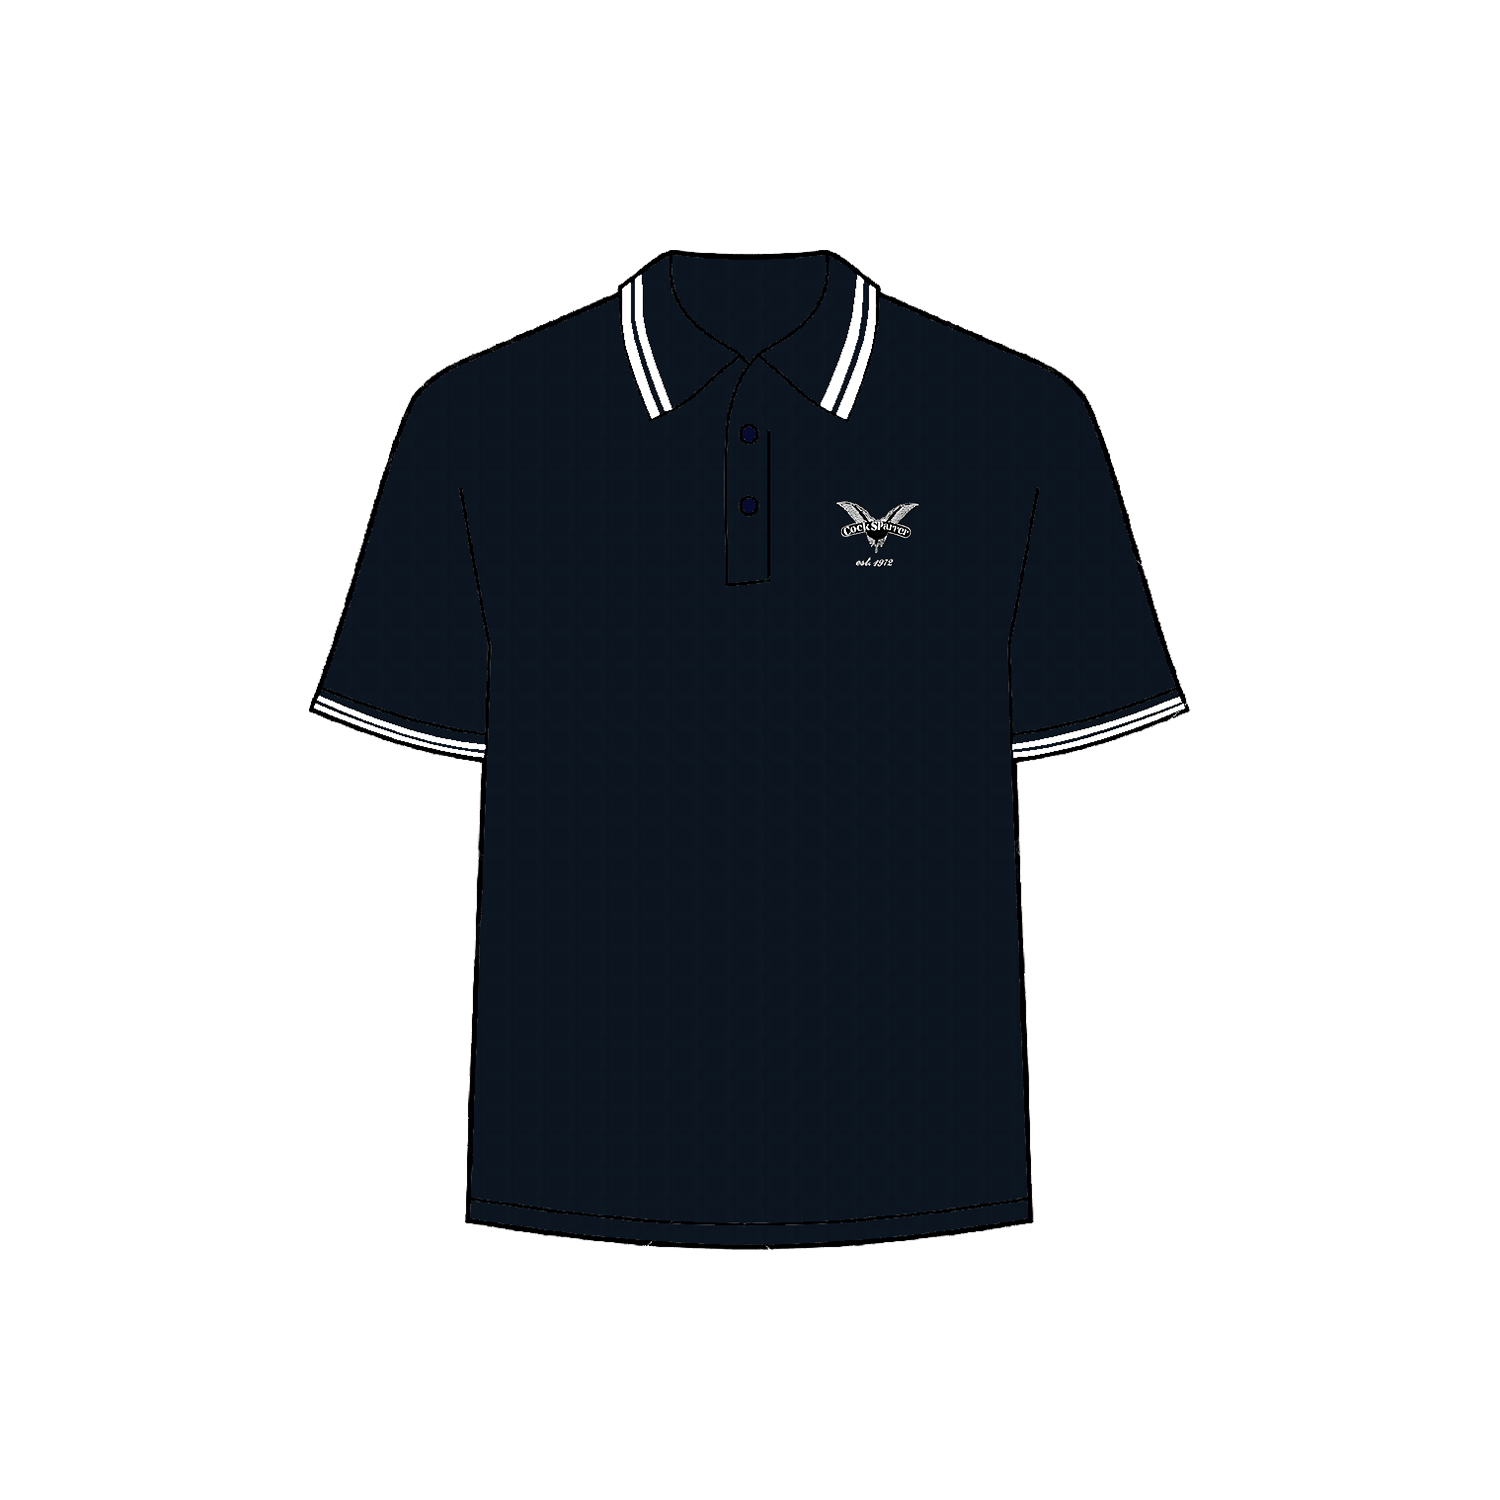 White 1972 navy polo shirt